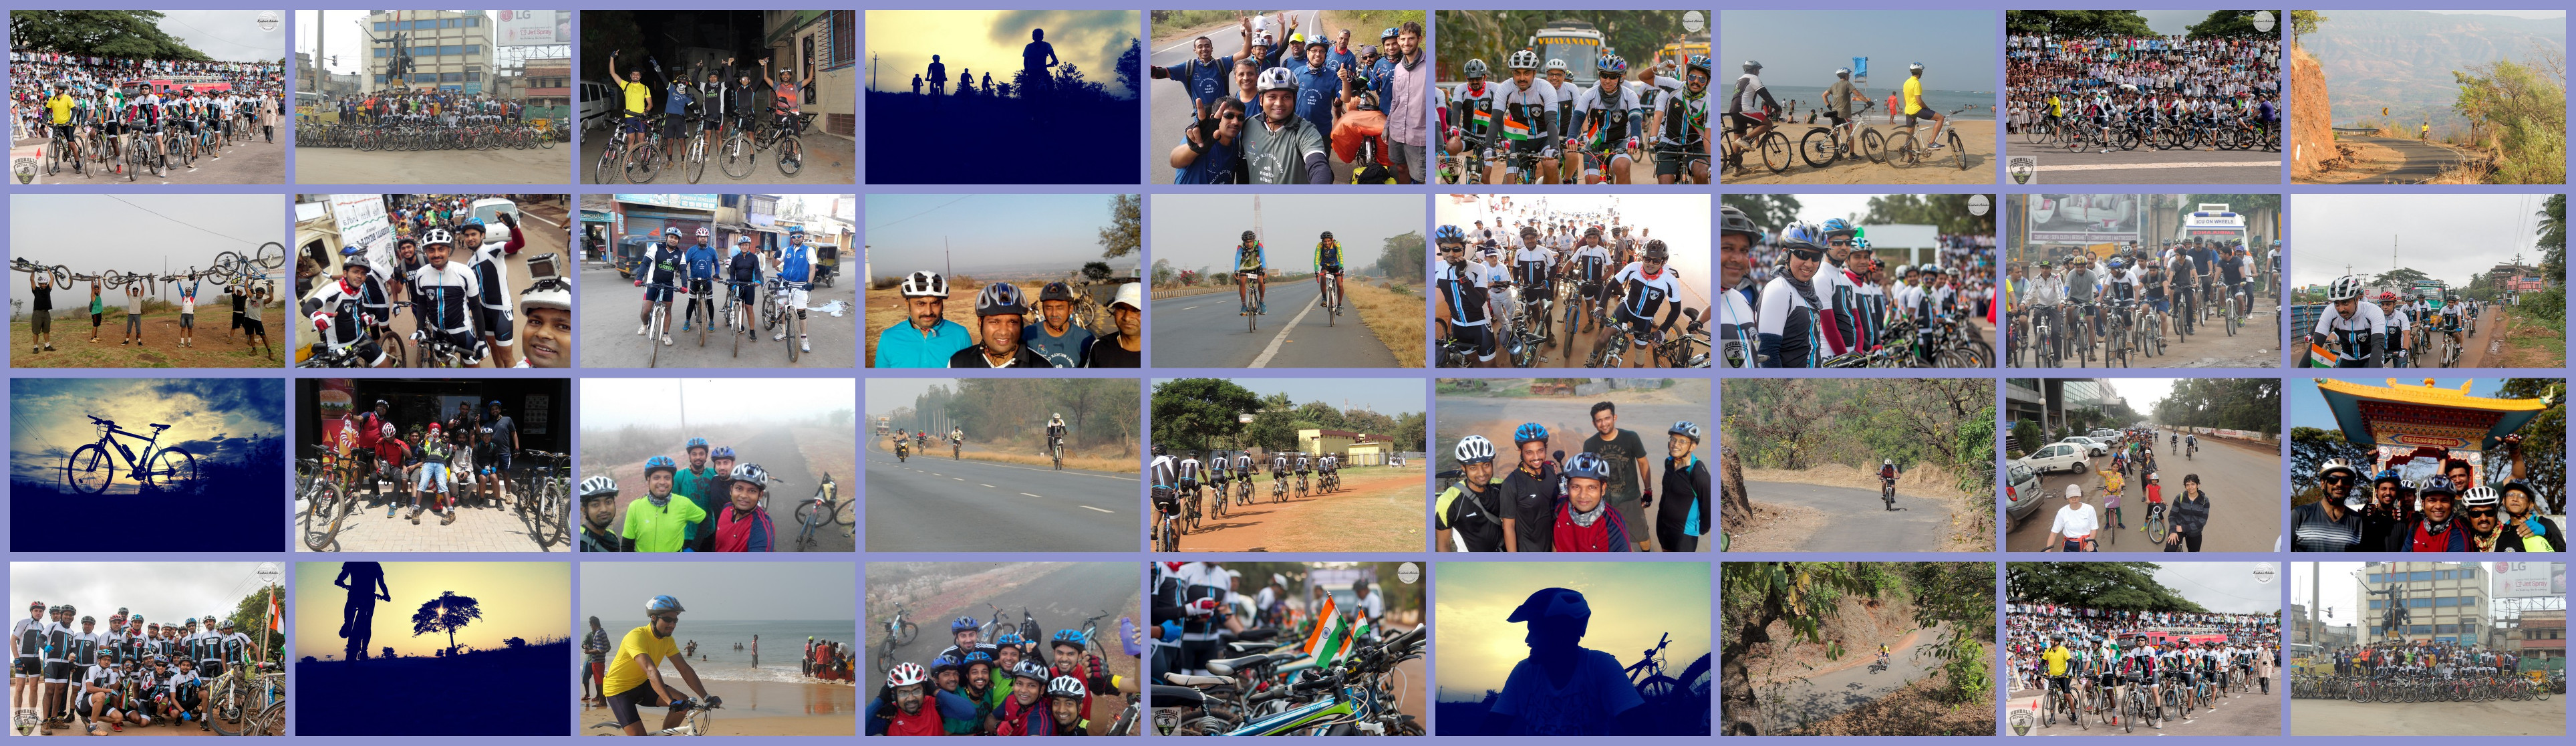 Book Online Tickets for Cyclotsava 2016, Hubli. Cyclotsava is an yearly event where we celebrate the spirit of cycling in Hubballi-Dharwad. We will be organizing a fully supported ride of 20Kms & 100Kms where most of the cycle enthusiasts can participate. The route will take you through the co